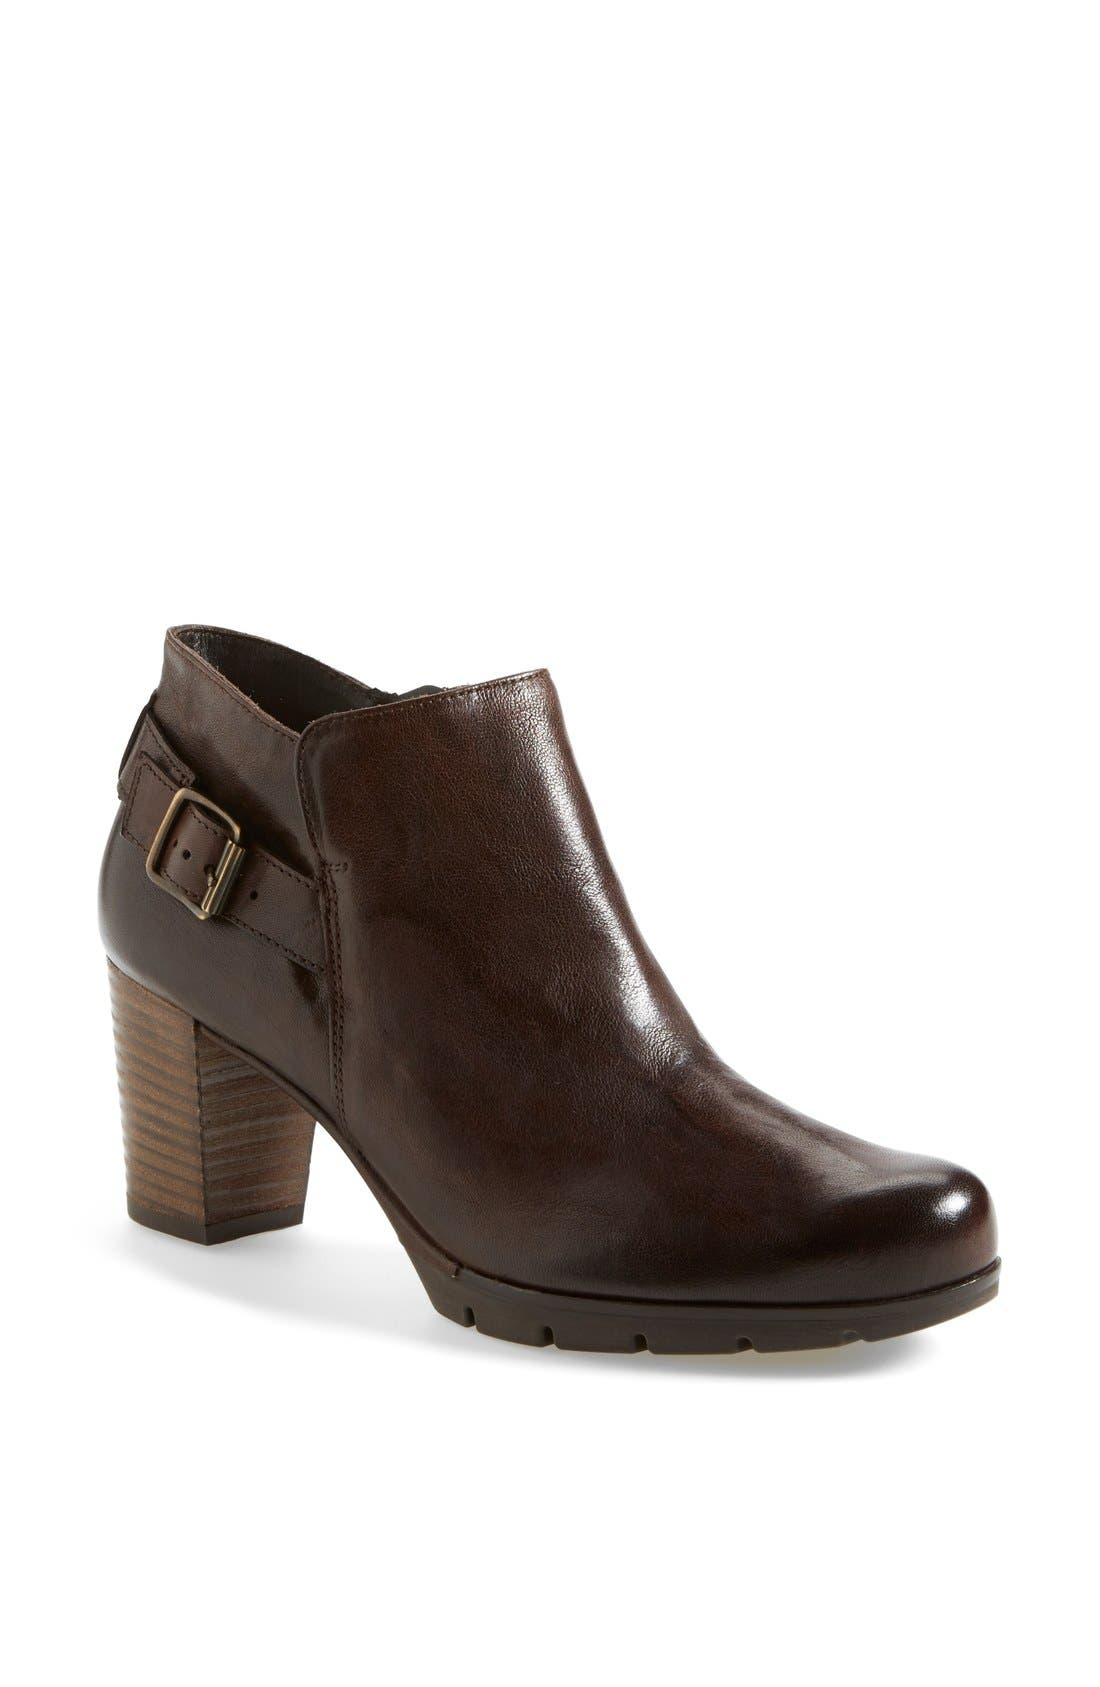 Alternate Image 1 Selected - Paul Green 'Abby' Bootie (Women)